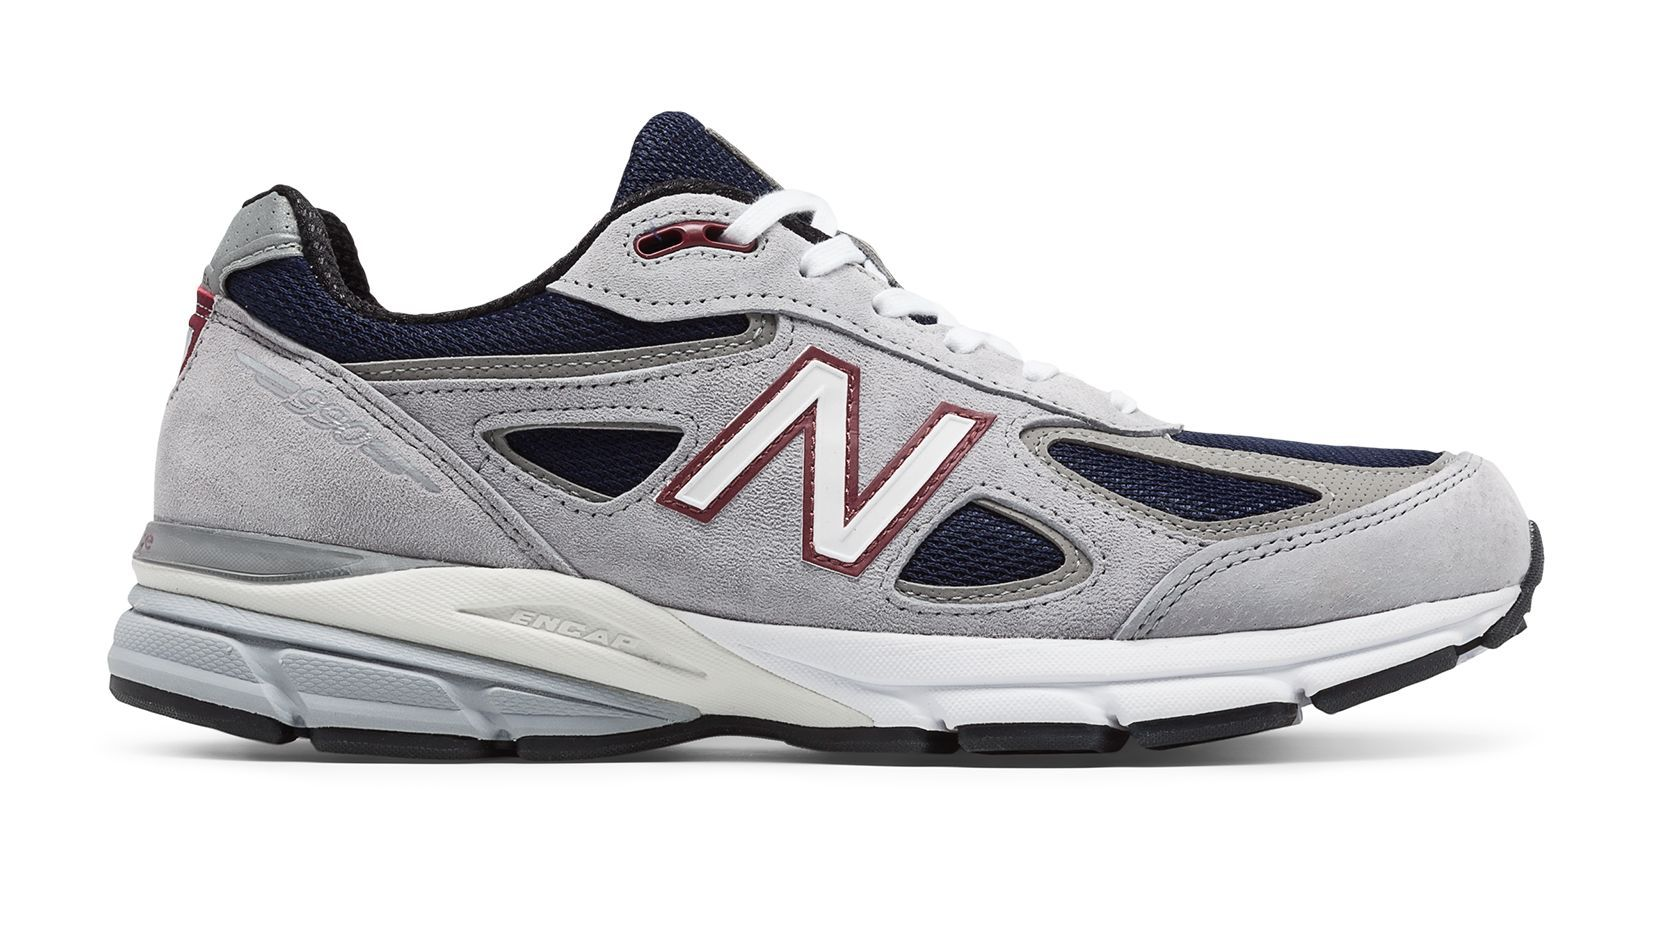 half off 08d1d b3754 New Balance 990v4, Grey with Navy | New Balance 990v4 | New ...